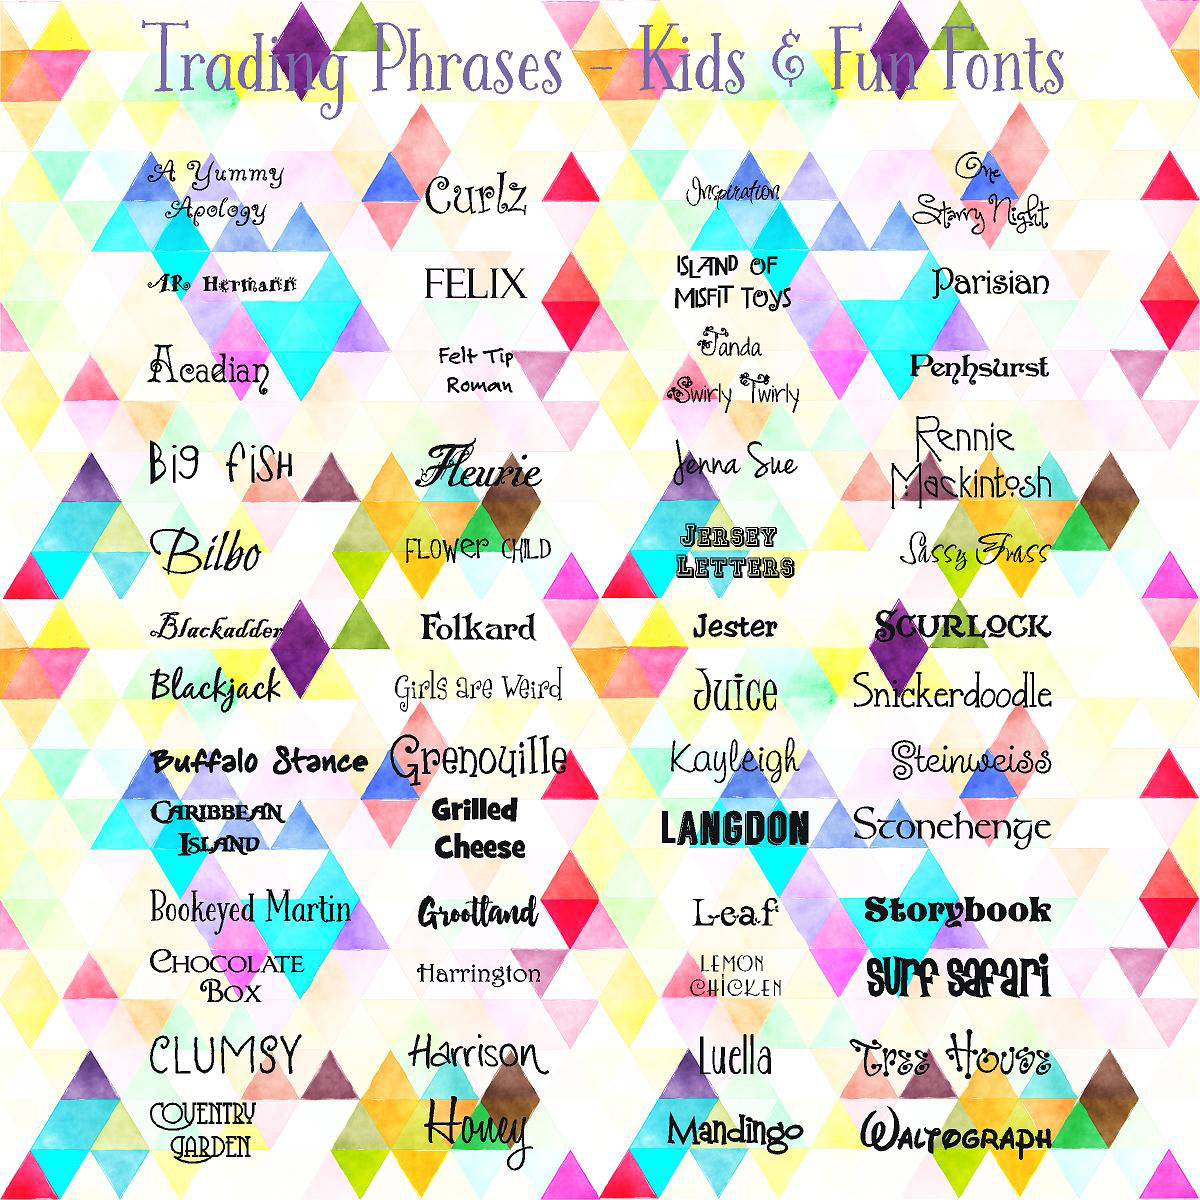 Trading Phrases Kids & Fun Fonts